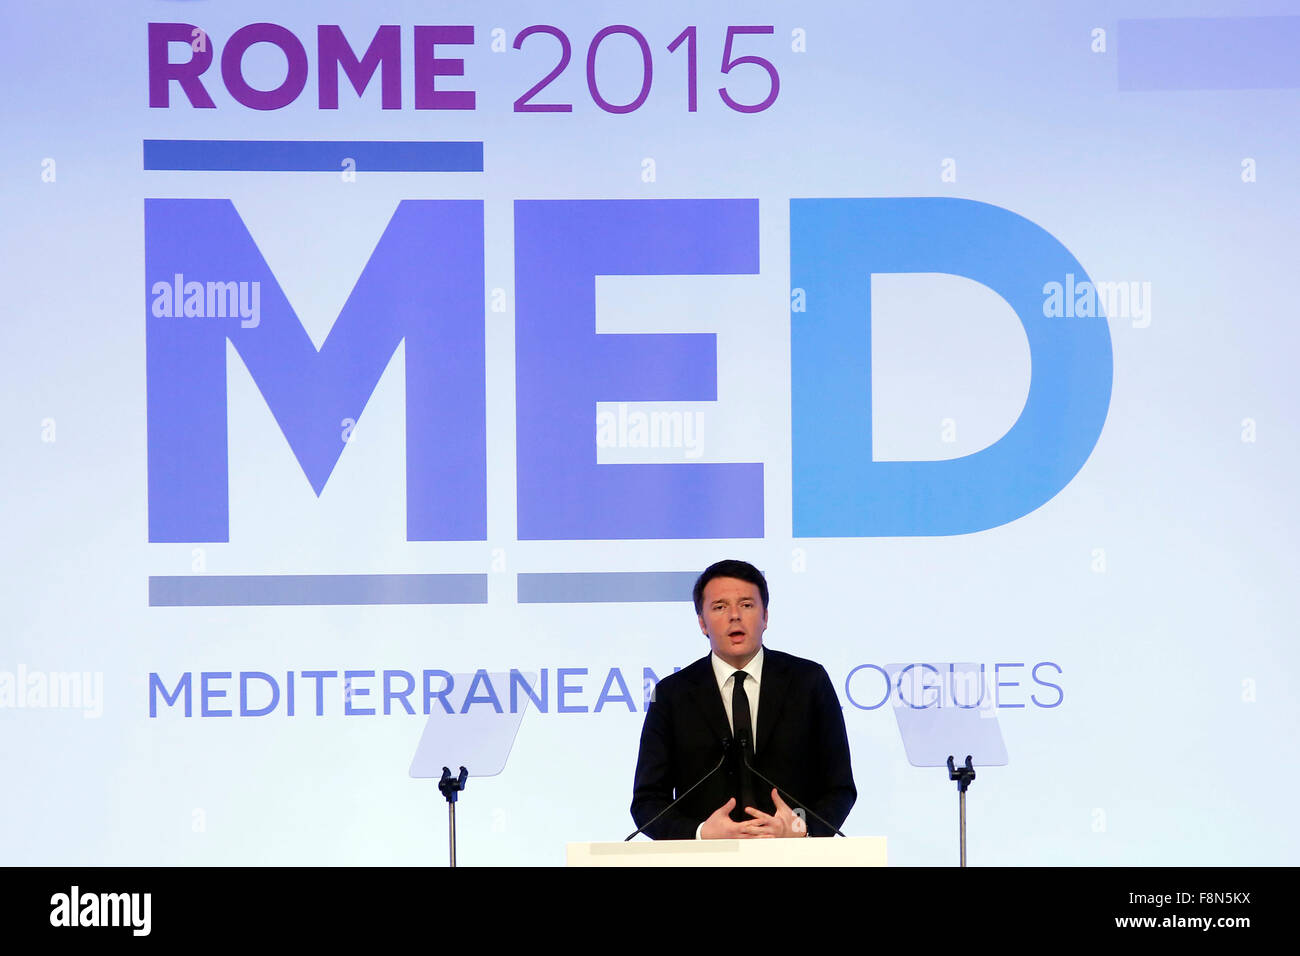 Rome, Italy. 10th December, 2015. Matteo Renzi Parco dei Principi Hotel  Forum Med 2015, Mediterranean Dialogues. - Stock Image